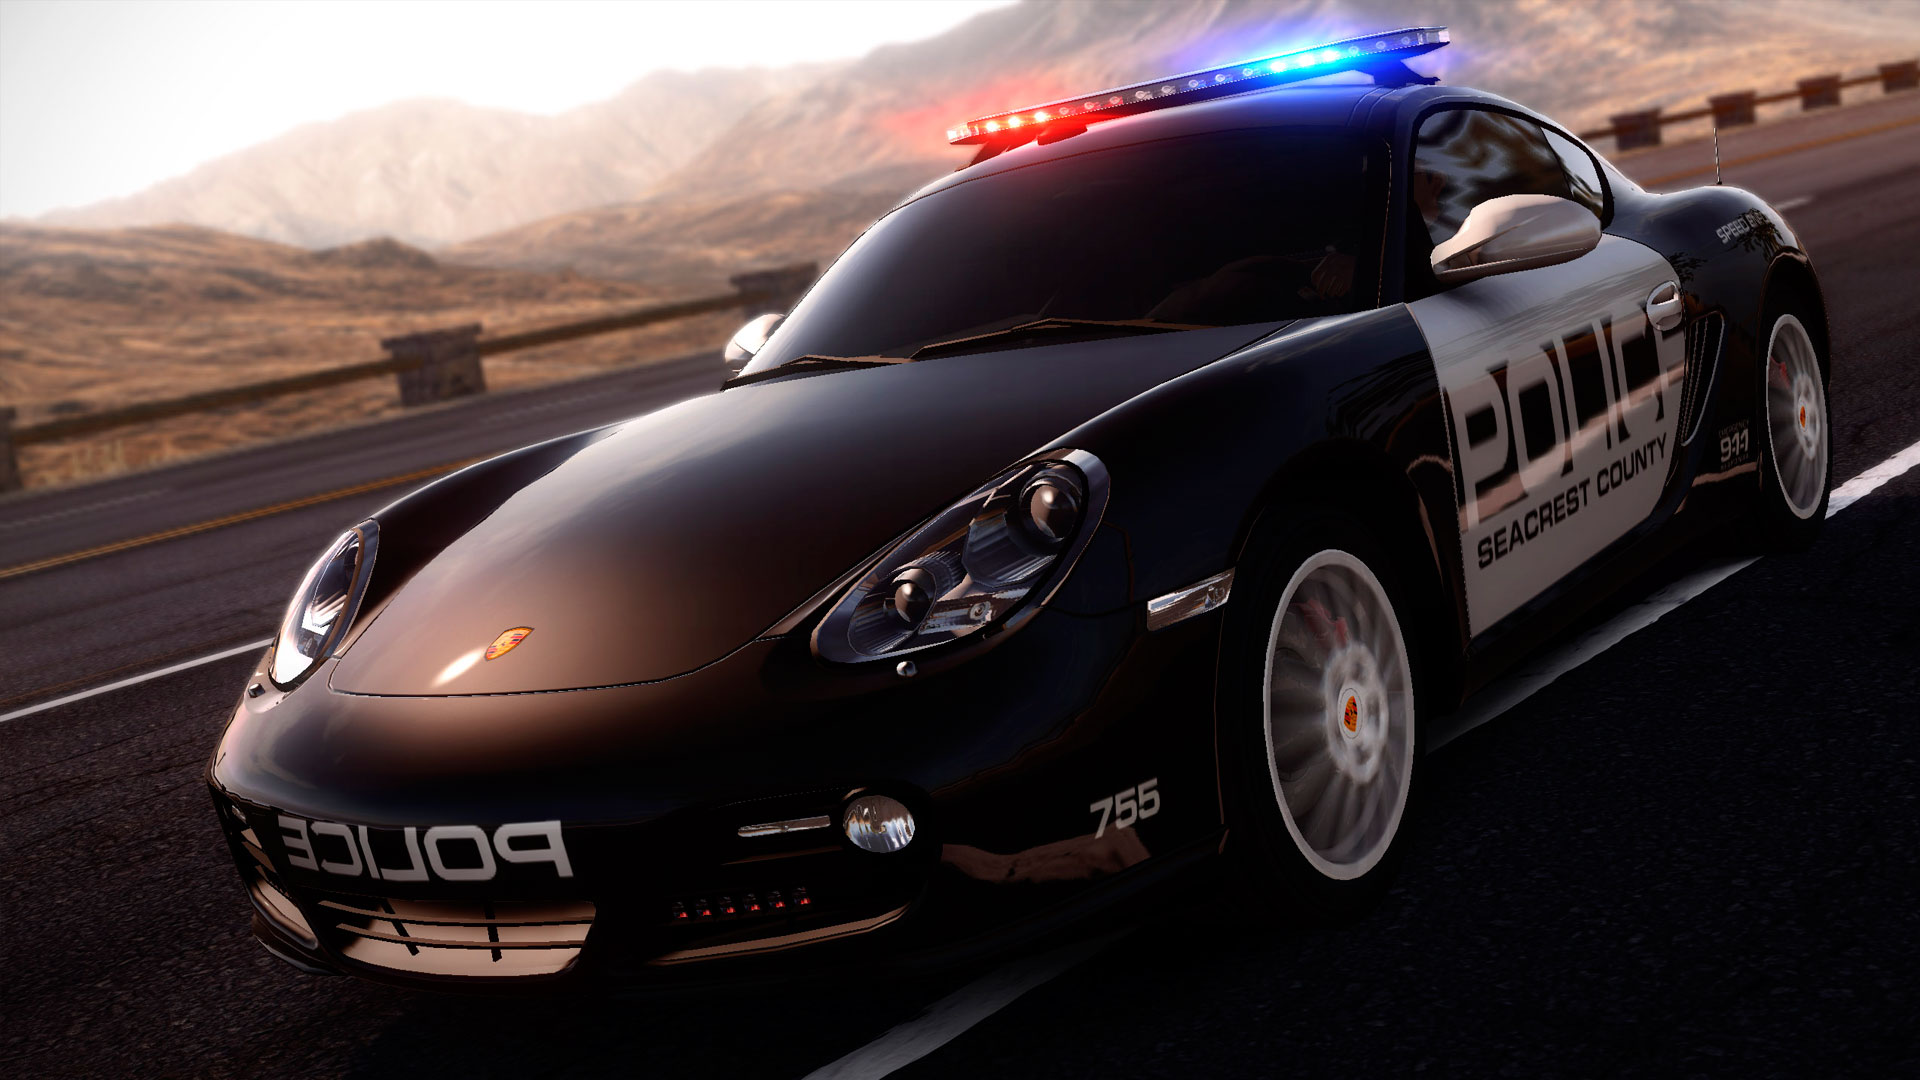 Police Car Hd Desktop Image 6160 Wallpaper Wallpaper hd 1920x1080